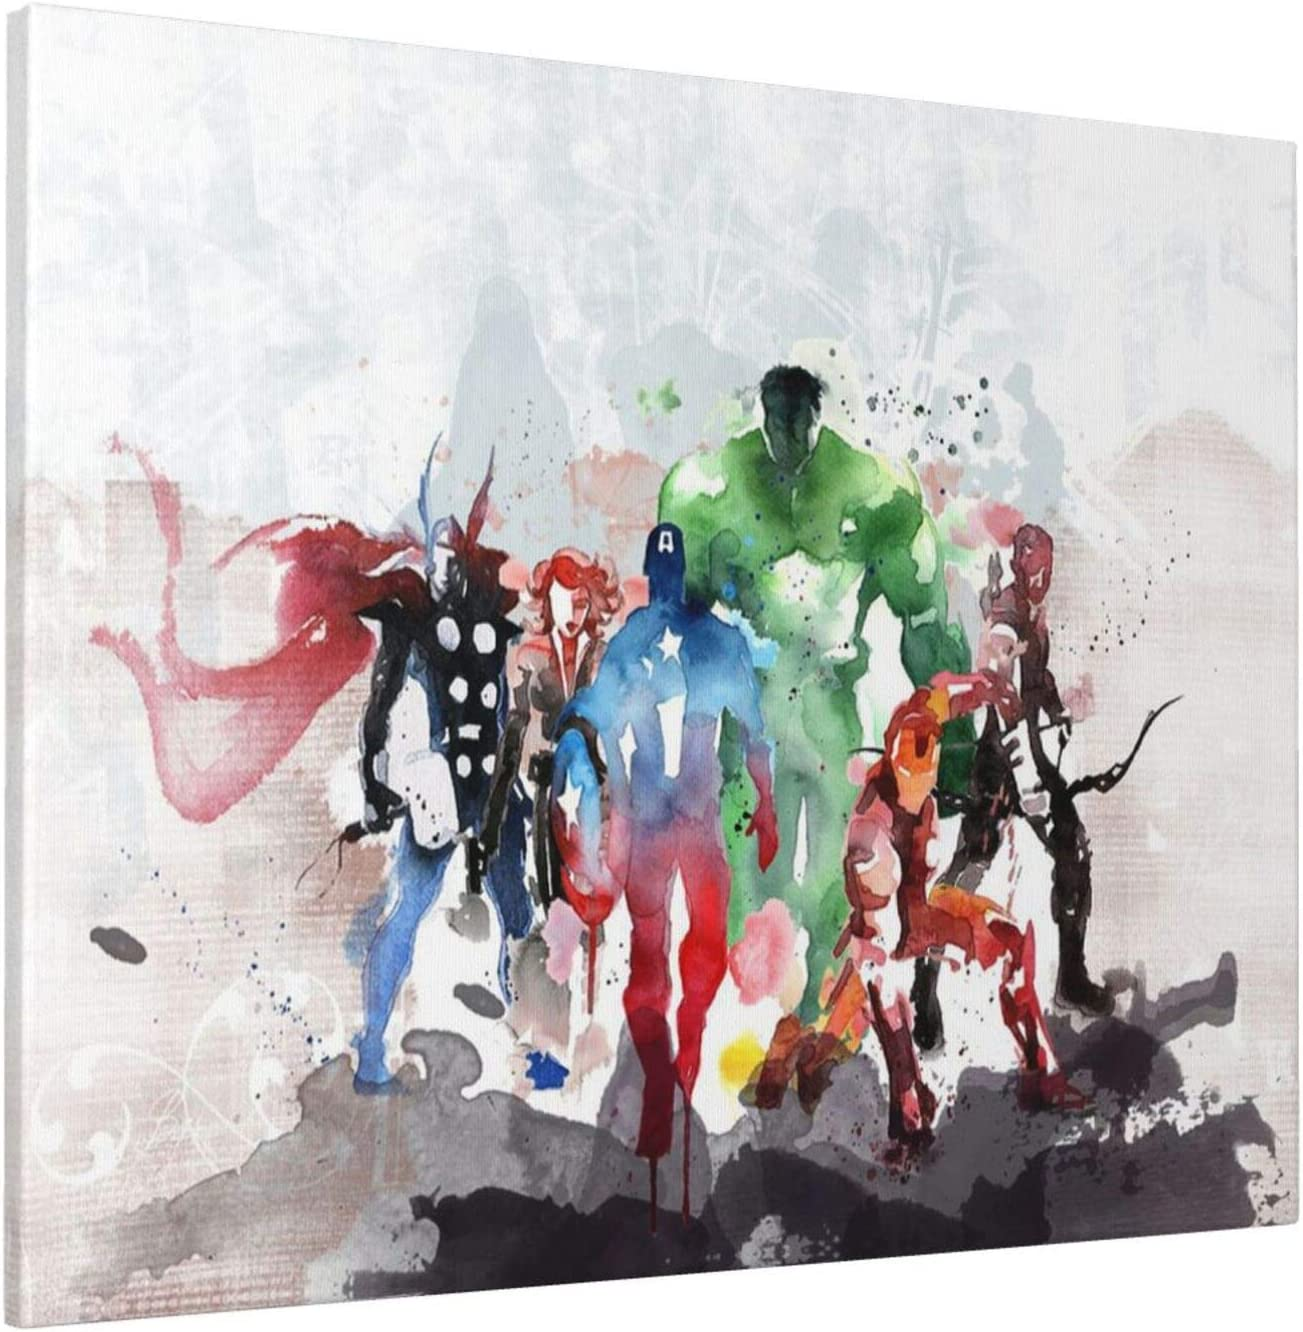 LP ART Canvas Print Wall Art Watercolor Super Heroes Collage Picture Painting for Living Room Bedroom Modern Home Decor Ready to Hang Stretched and Framed Artwork 16'x20'